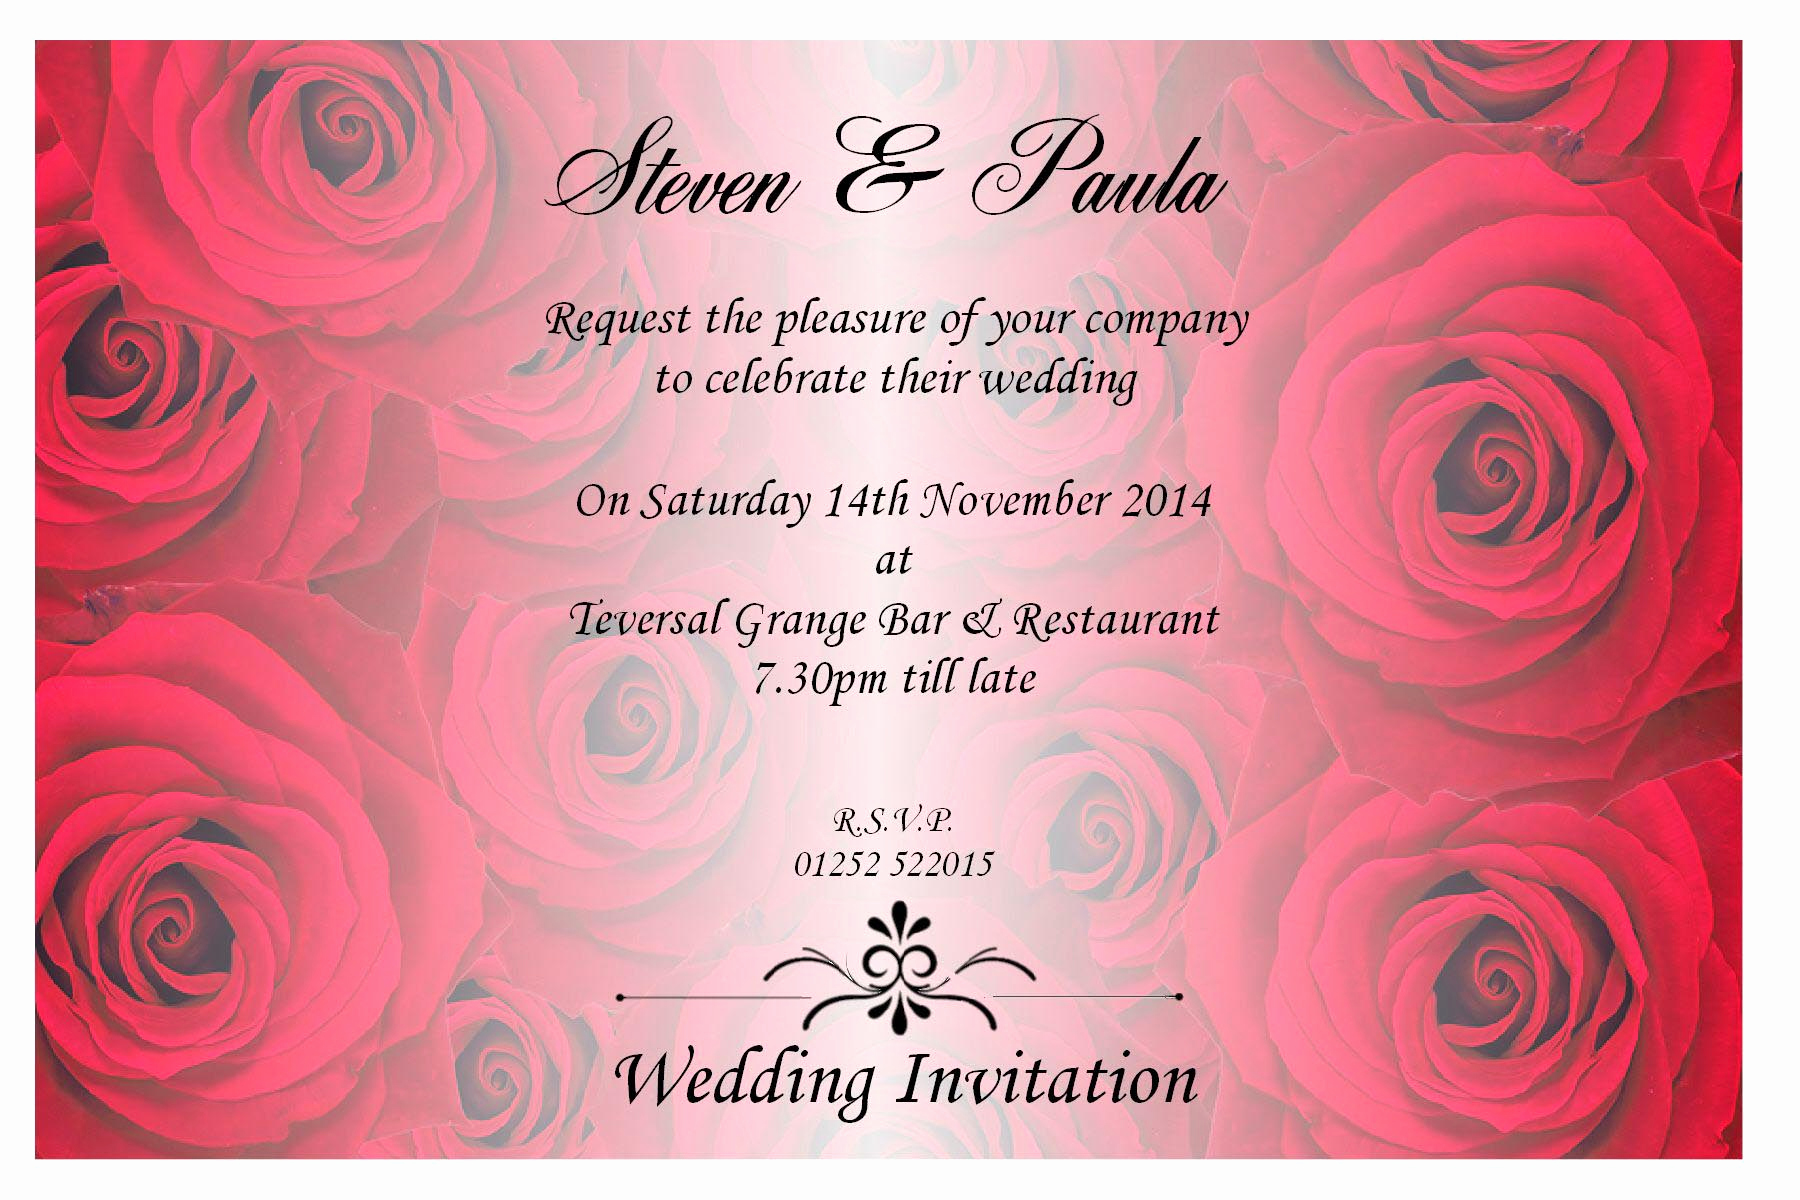 Invitation Card for Weddings Beautiful Romantic Marriage Invitation Quotes for Indian Wedding